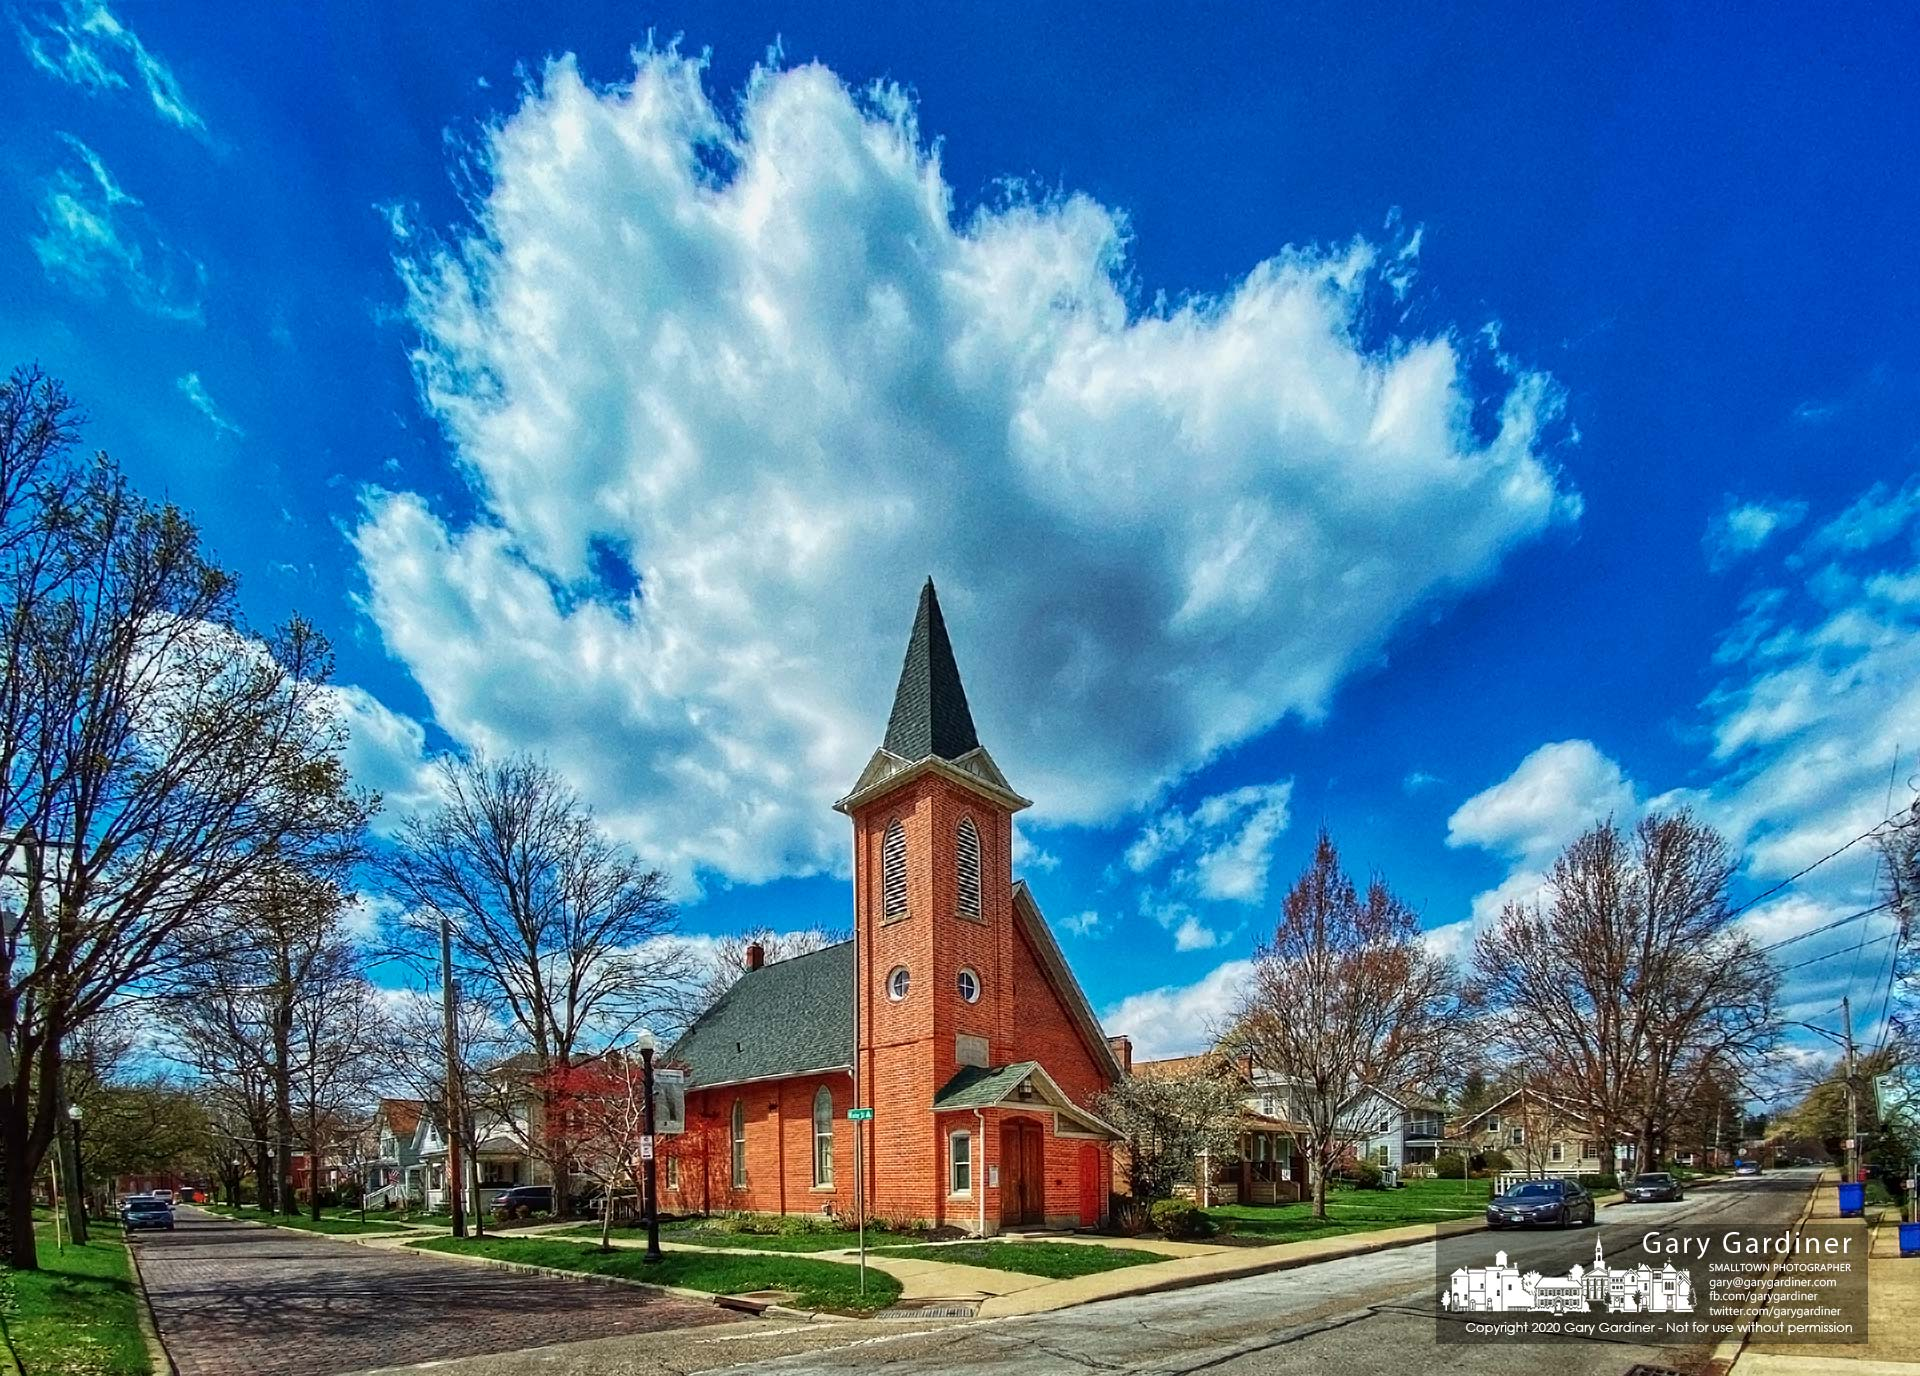 Spring clouds float over the Frank Museum in Uptown Westerville after morning temperatures dropped below freezing. My Final Photo for April 16, 2020.